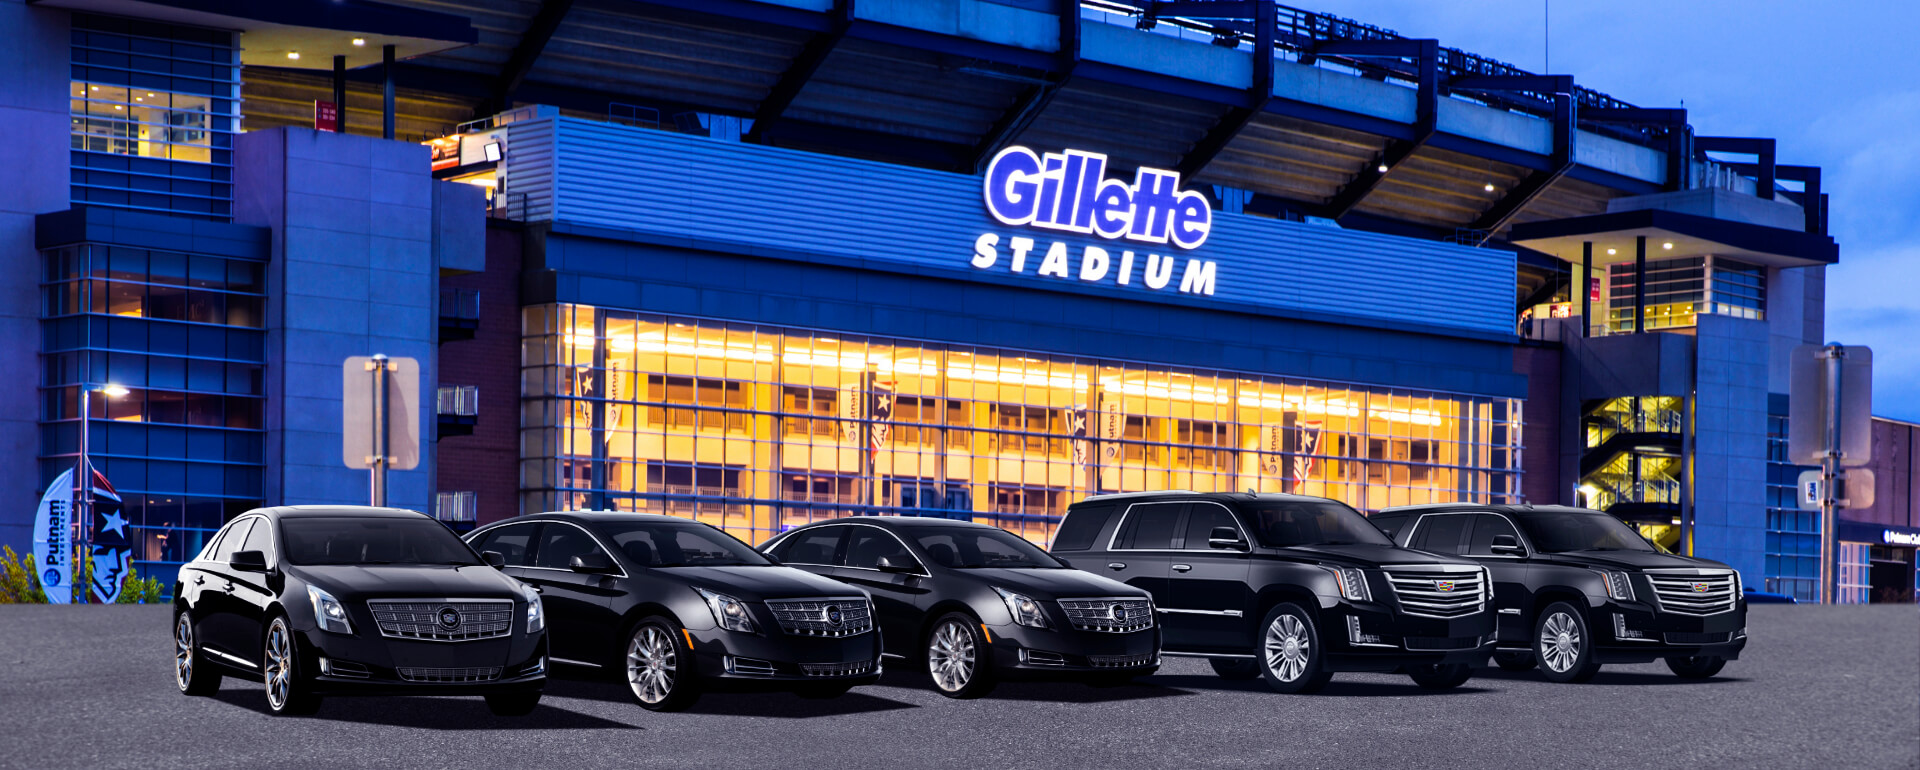 Limo Service Boston to Gillette Stadium